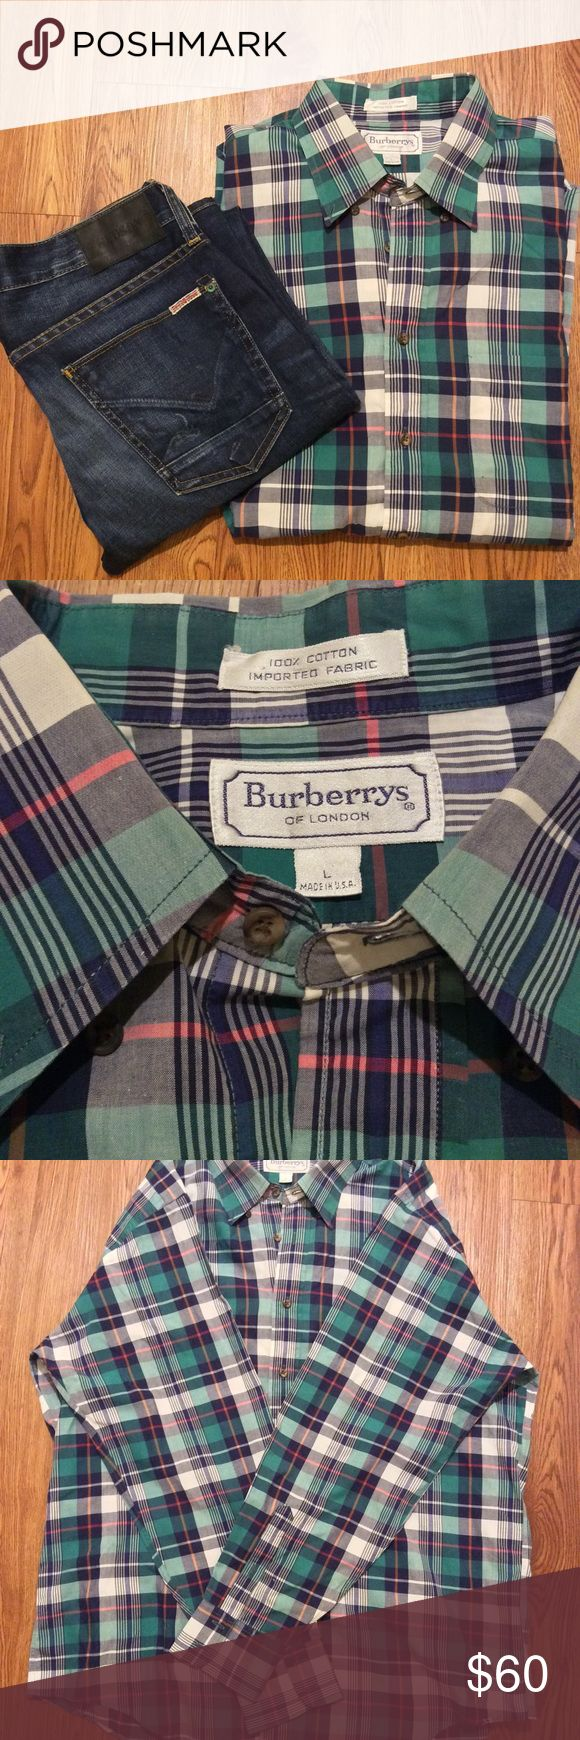 Vintage Burberry Men's Shirt. Size Large. Vintage Burberry Men's Shirt. Size Large, blue, pink, green and pink plaid, new without new tags, 20-inches shoulder to shoulder, 30-inch length shoulder to hip, 23-inch width Burberry Shirts Casual Button Down Shirts